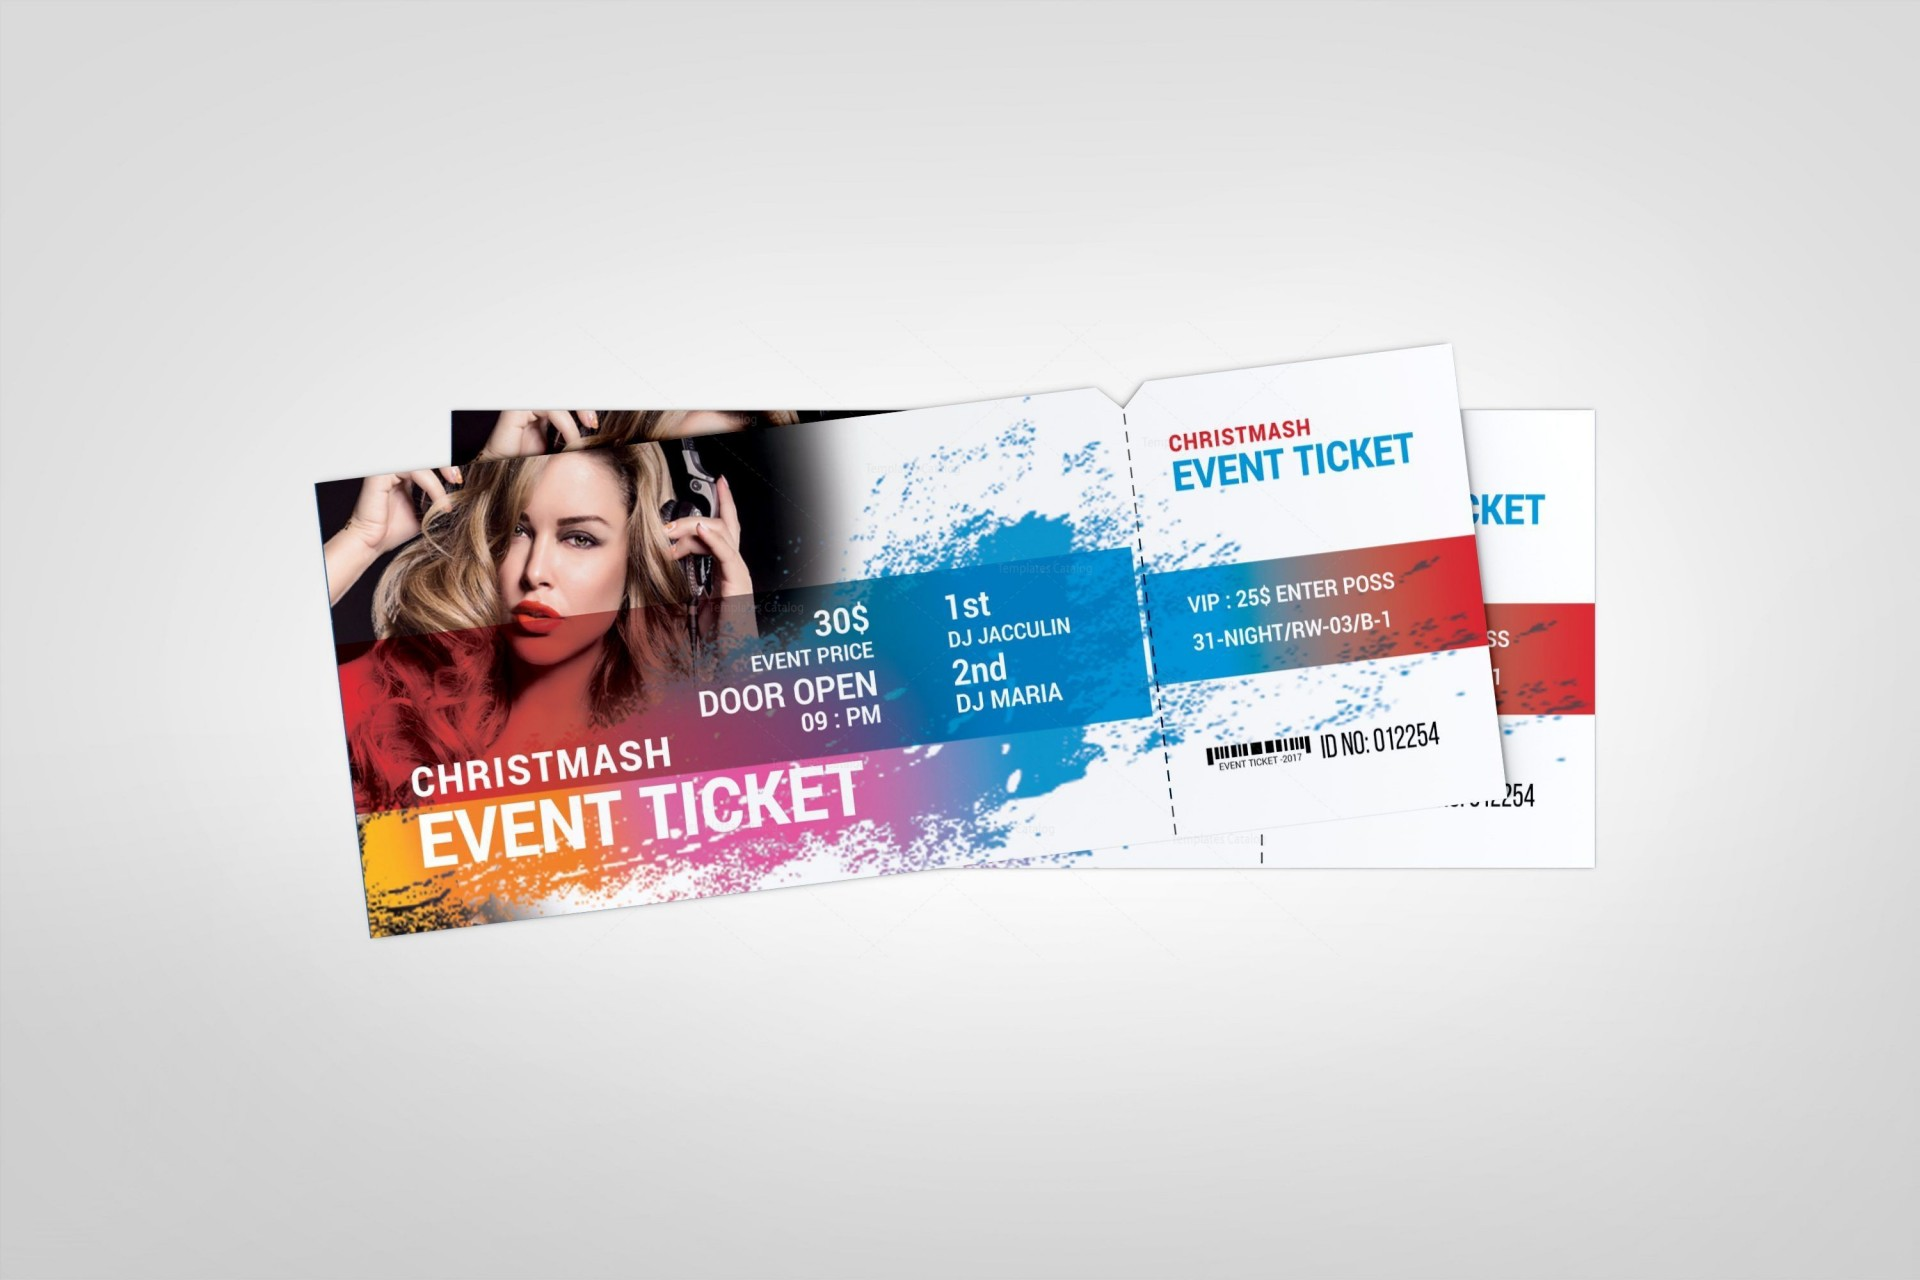 000 Top Concert Ticket Template Google Doc Example  Docs1920